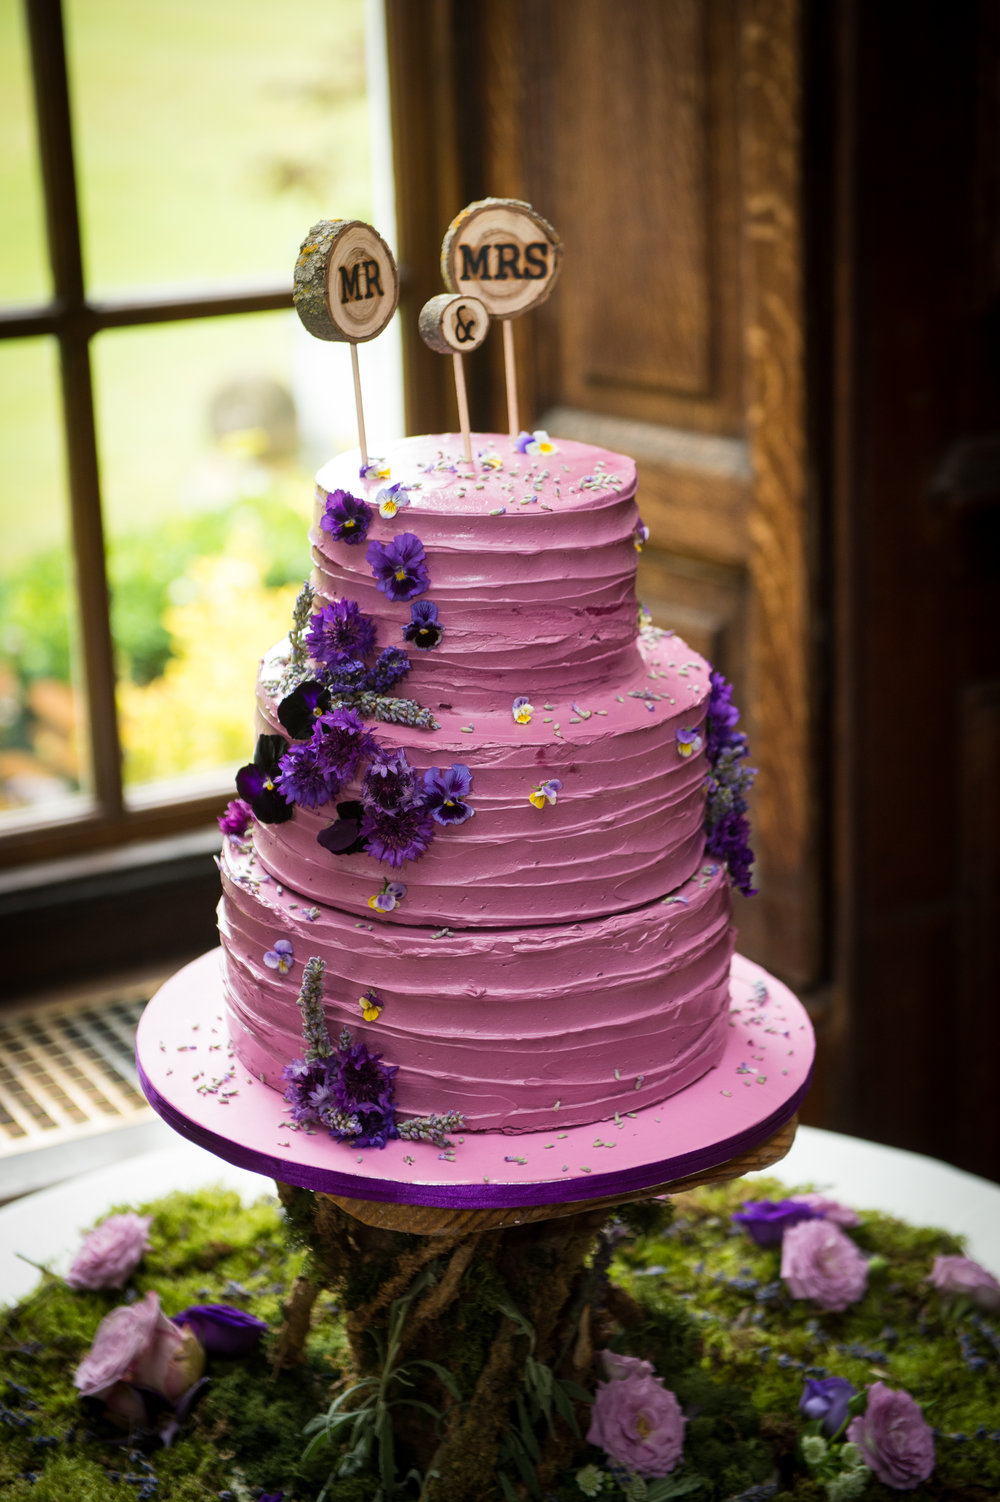 Mauve buttercream wedding cake with edible flowers.jpg